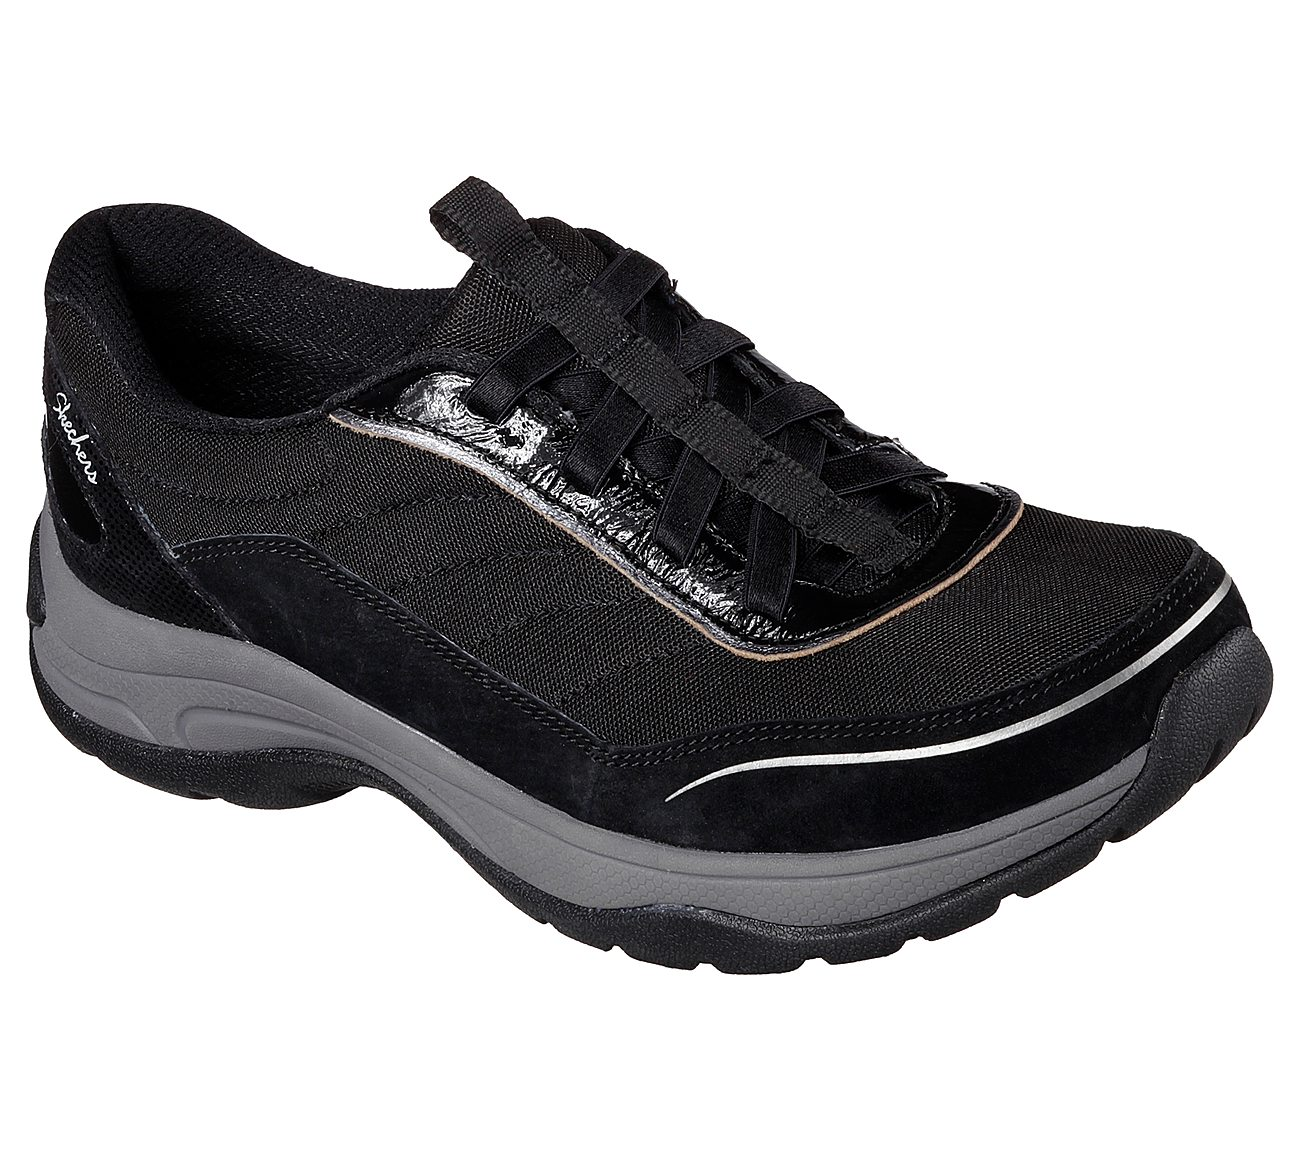 51a551efc Buy SKECHERS Relaxed Fit  Power Walk Modern Comfort Shoes only  45.00